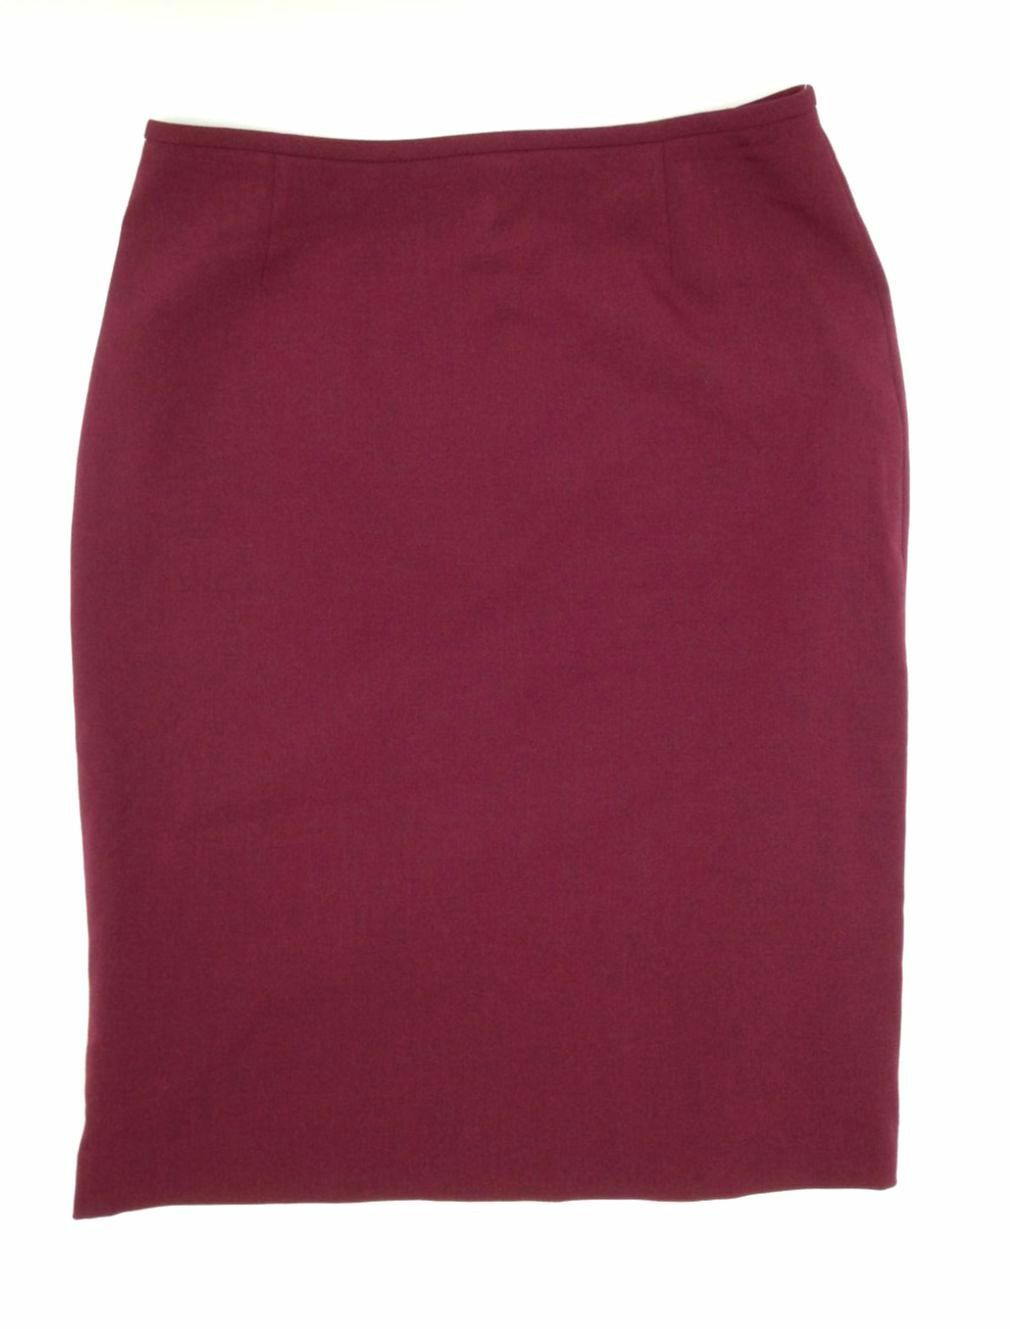 NEW  TAHARI ASL WOMEN'S RED KNEE-LENGTH PENCIL-SILHOUETTE SKIRT SIZE 4